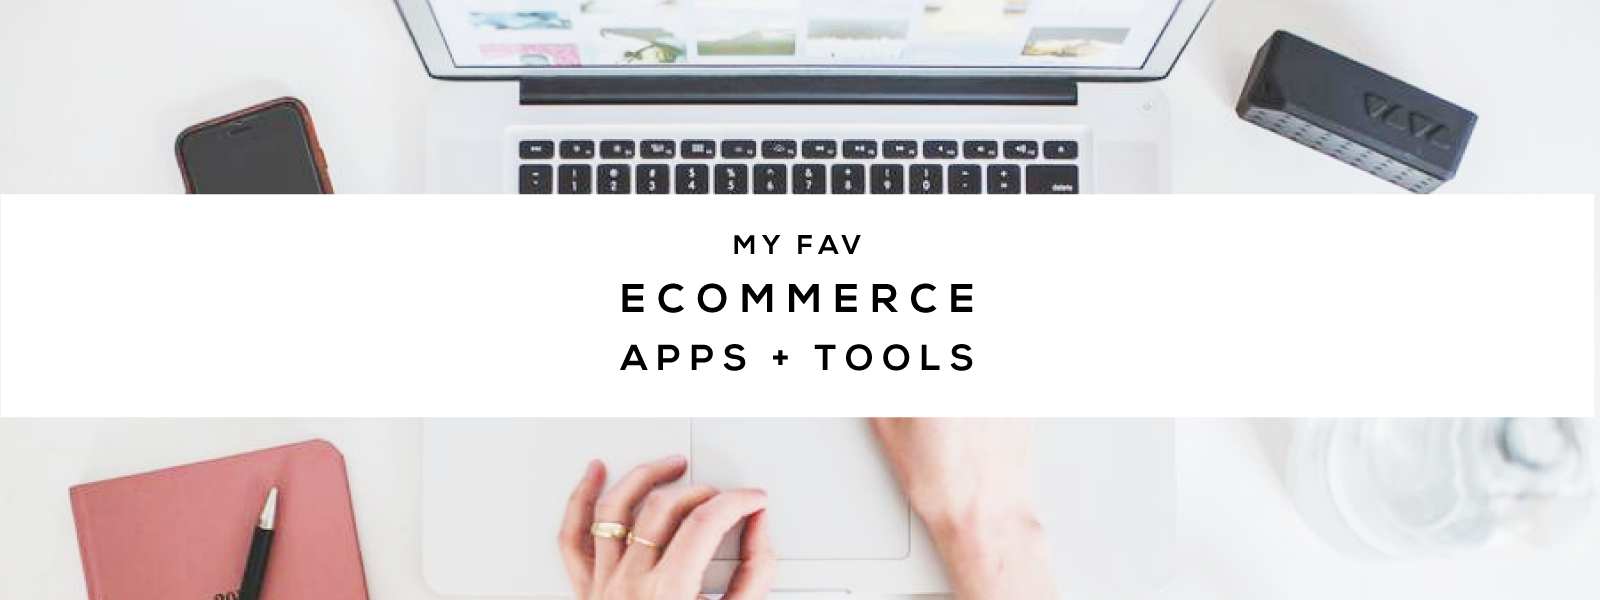 fav ecommerce shopify apps and tools